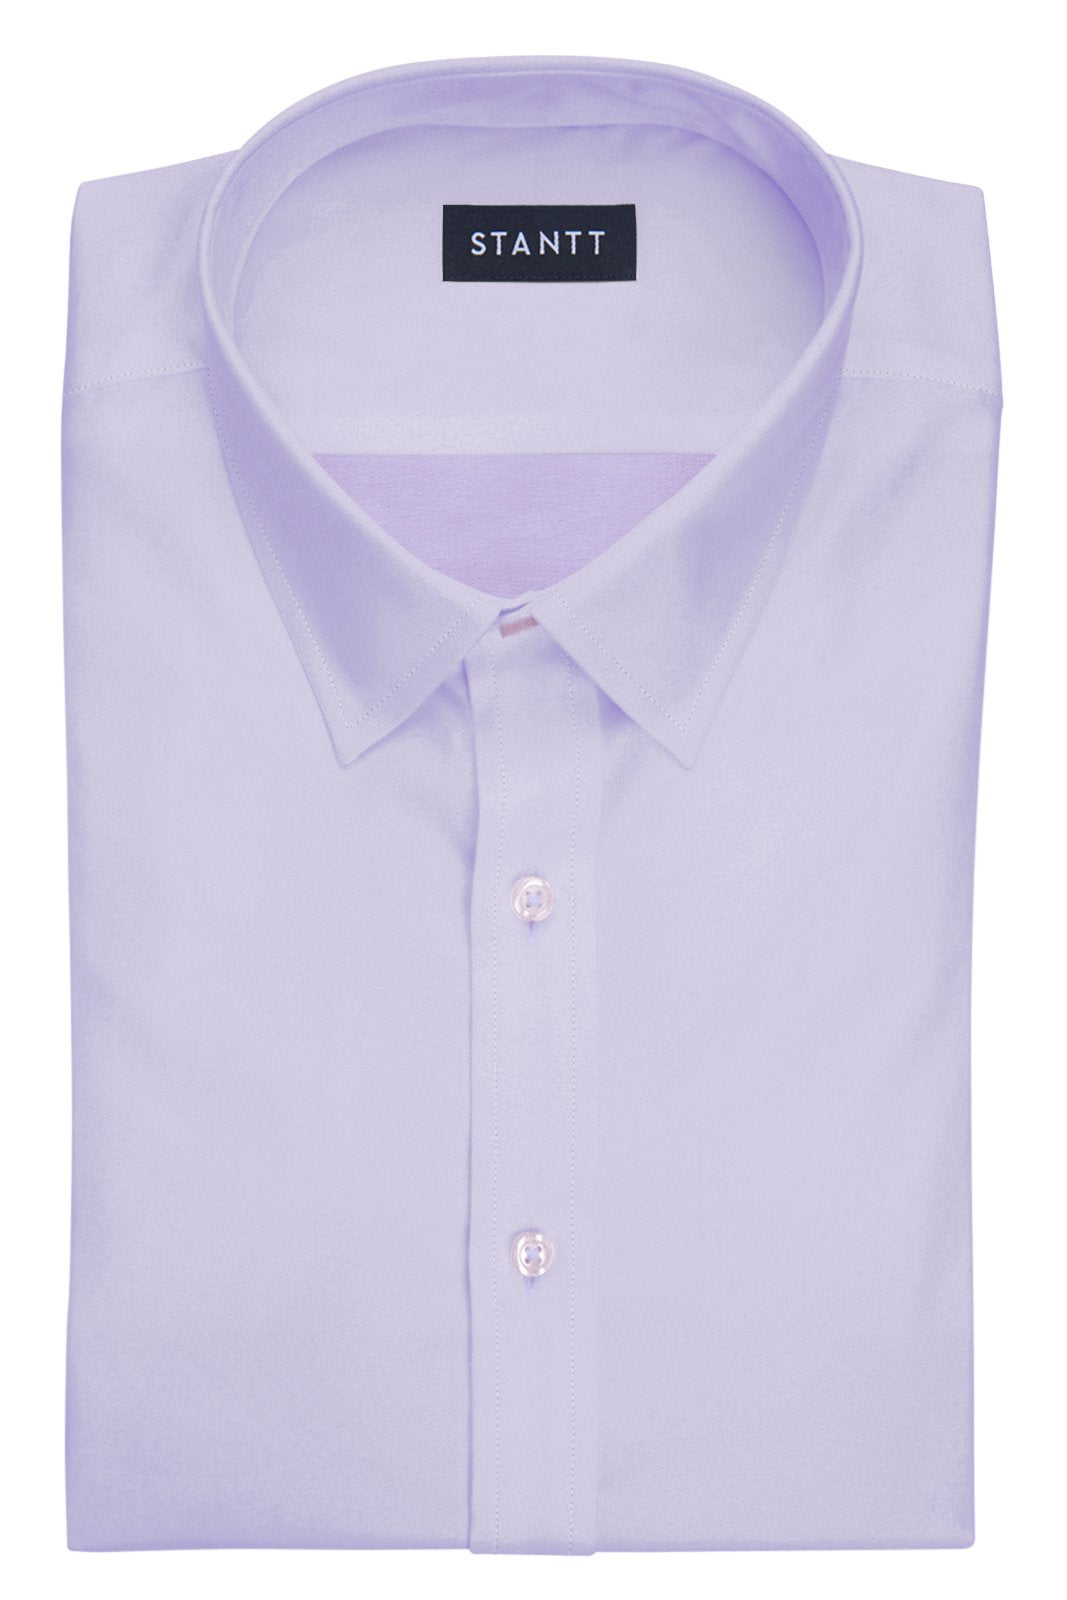 Wrinkle-Resistant Lavender Twill: Semi-Spread Collar, French Cuff